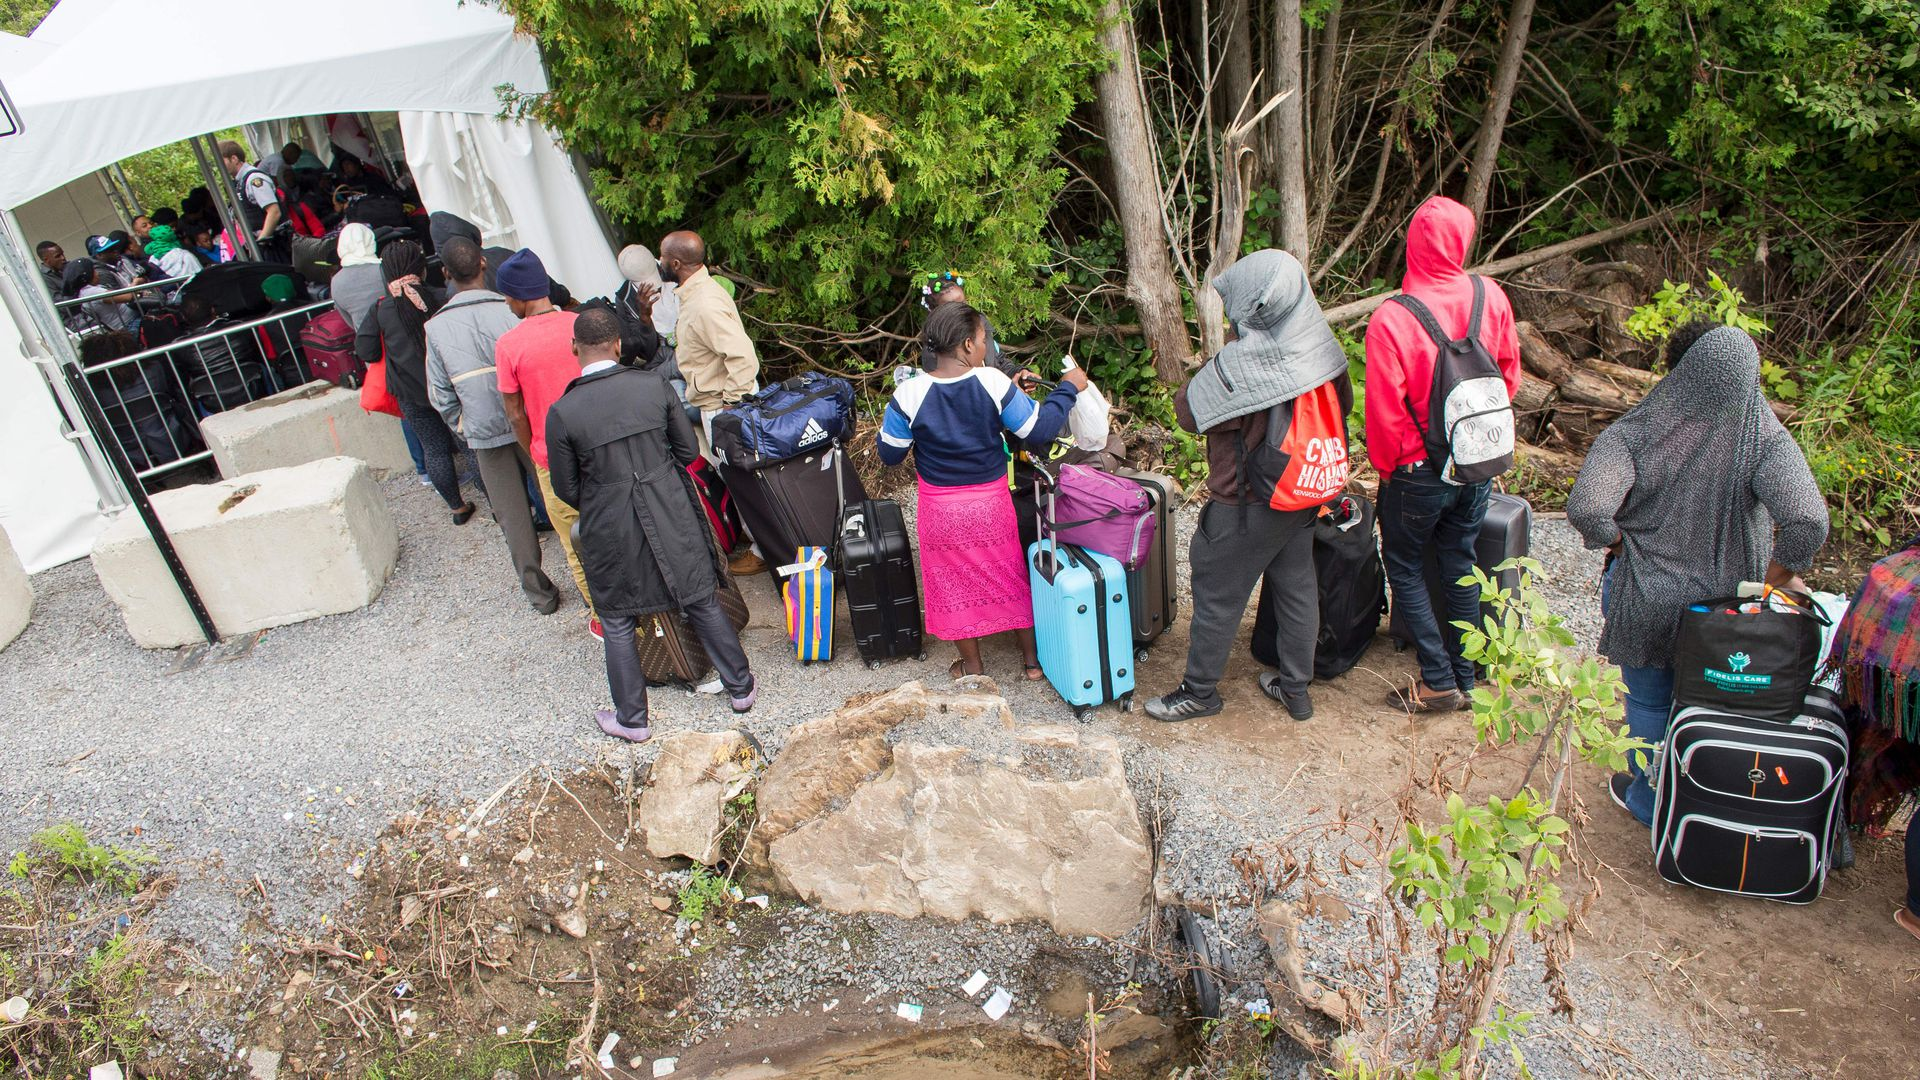 A long line of asylum seekers wait to illegally cross the Canada/US border near Champlain, New York